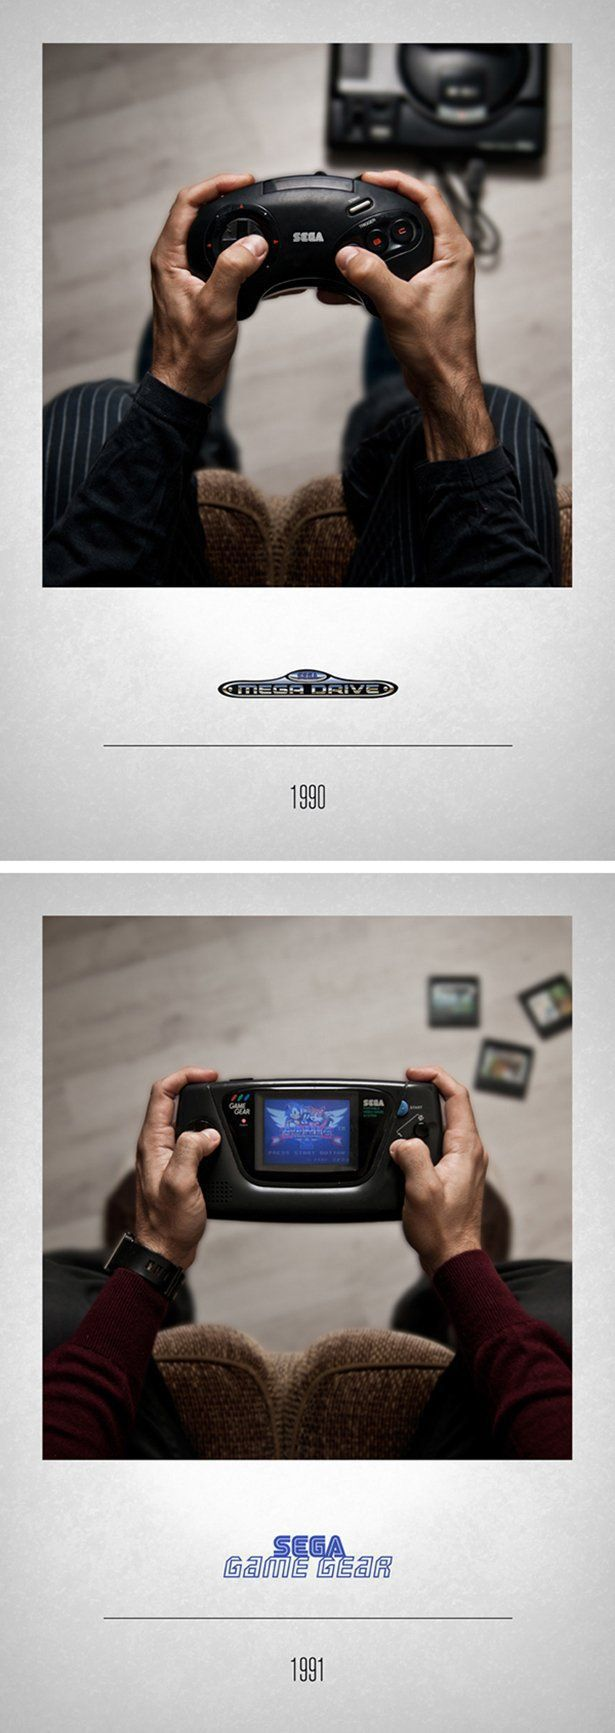 How Video Game Controllers Have Changed Over the Years